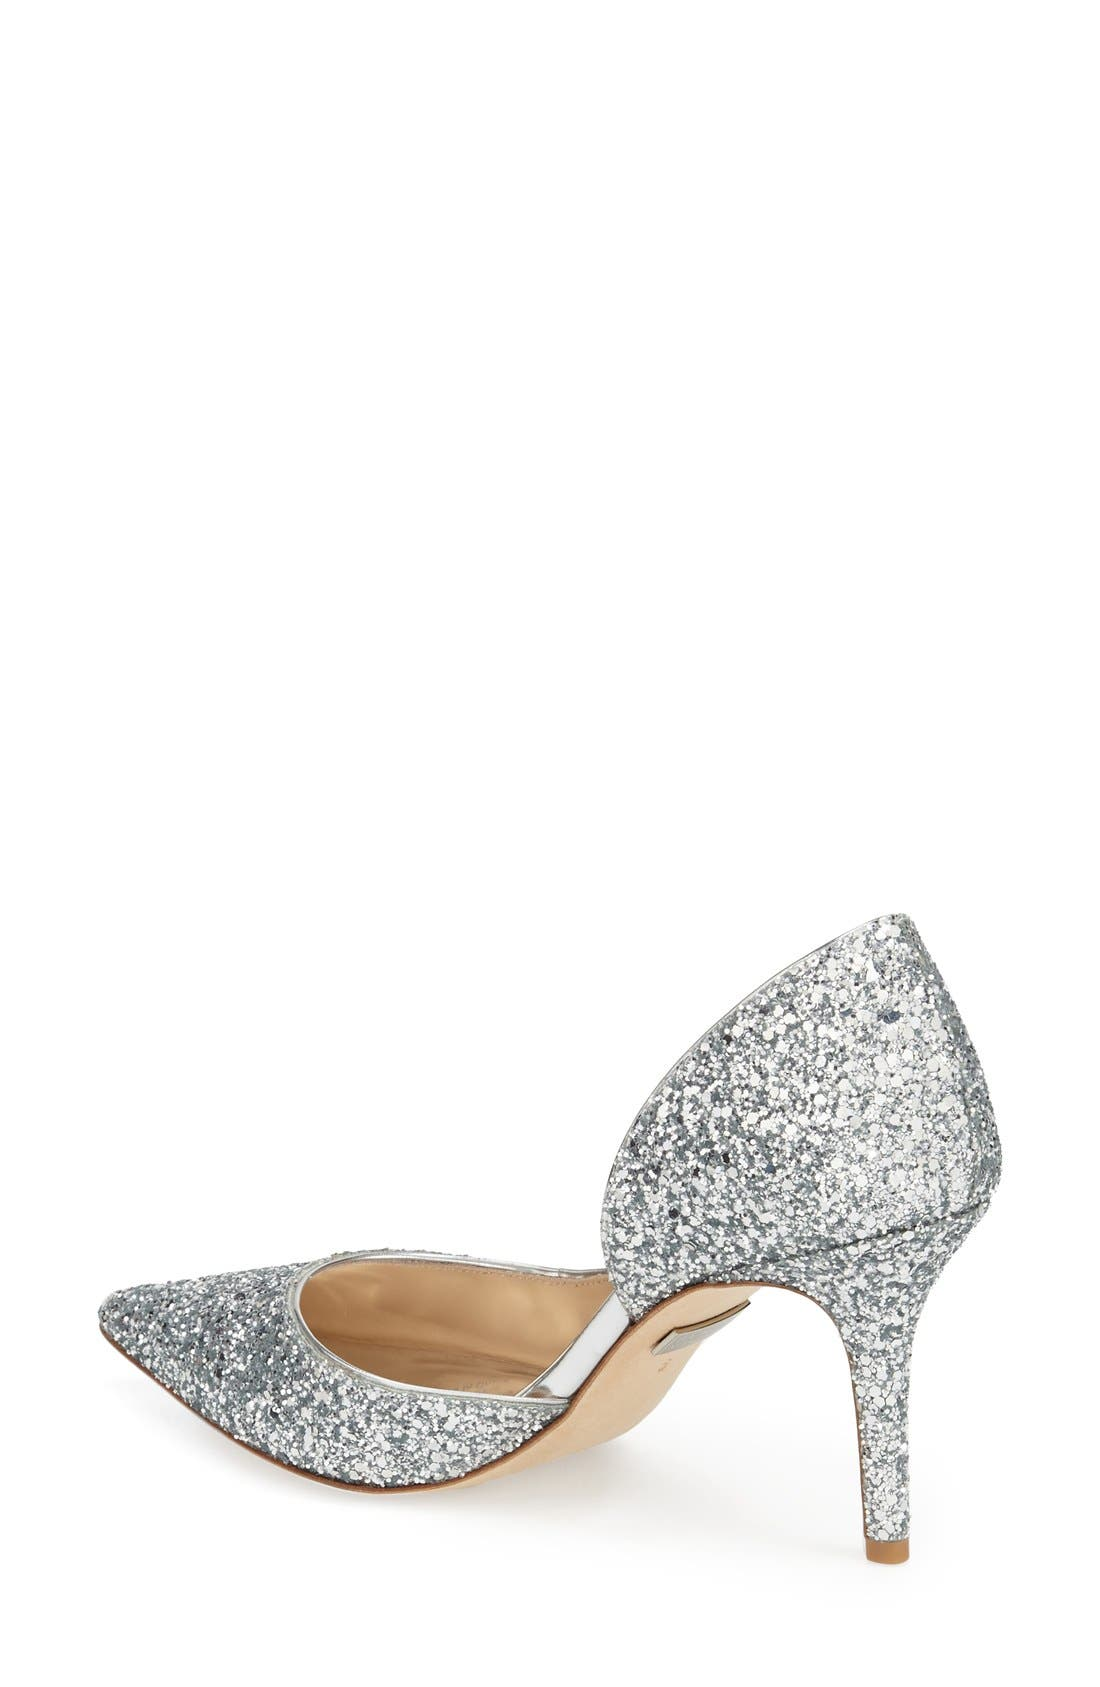 'Daisy' Embellished Pointy Toe Pump,                             Alternate thumbnail 4, color,                             SILVER GLITTER FABRIC